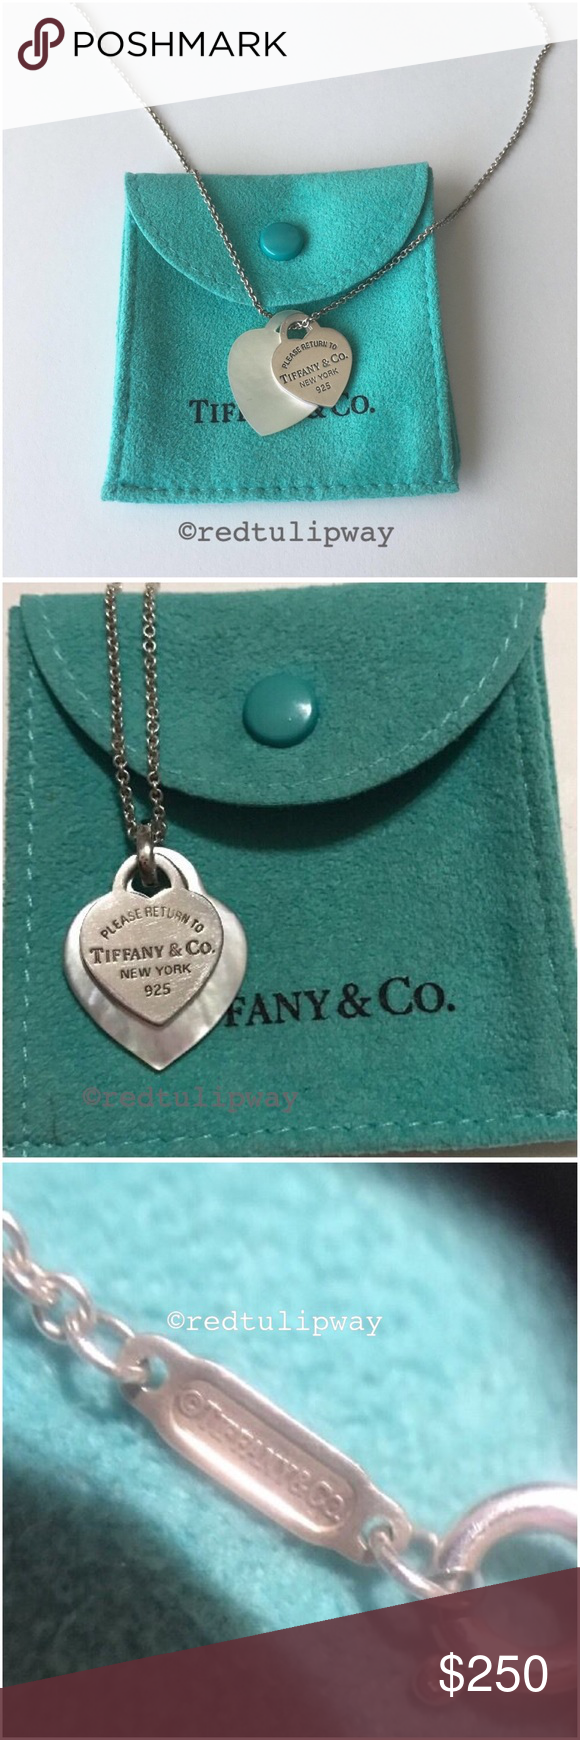 d6ecac9ce Auth. Tiffany & Co. Pearl Double Heart Pendant Guaranteed authentic, SUPER  RARE Tiffany & Co. mother of pearl and sterling silver double heart pendant.